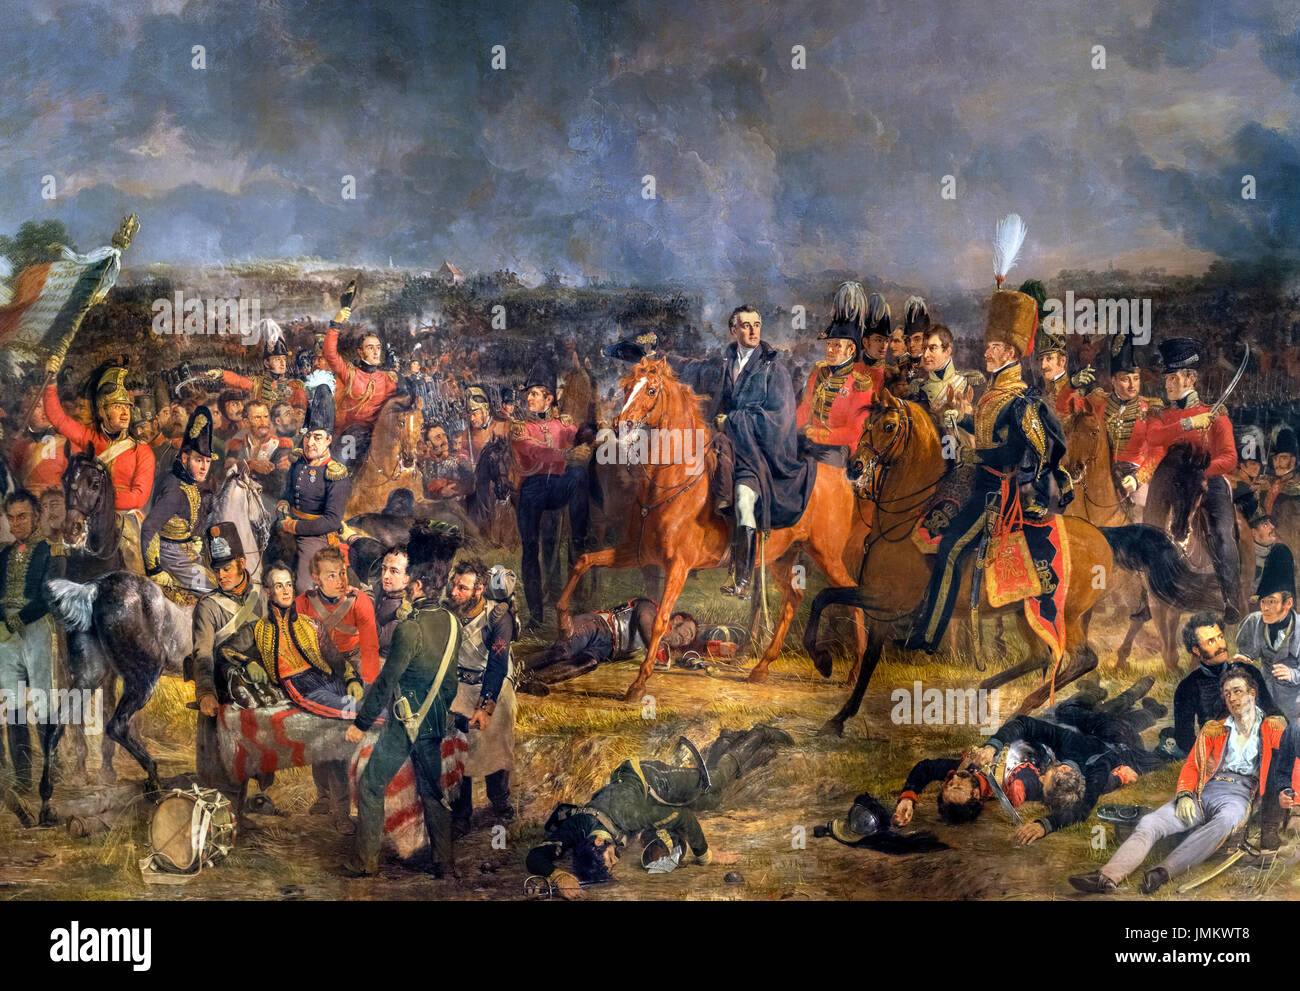 The Battle of Waterloo by Jan Willem Pieneman (1779-1853), oil on canvas, 1824. The painting shows the Duke of Wellington, on horseback in the centre of the picture, at a decisive moment in the Battle of Waterloo on 18 June 1815. William, Prince of Orange, is shown wounded on a stretcher in the foreground. - Stock Image